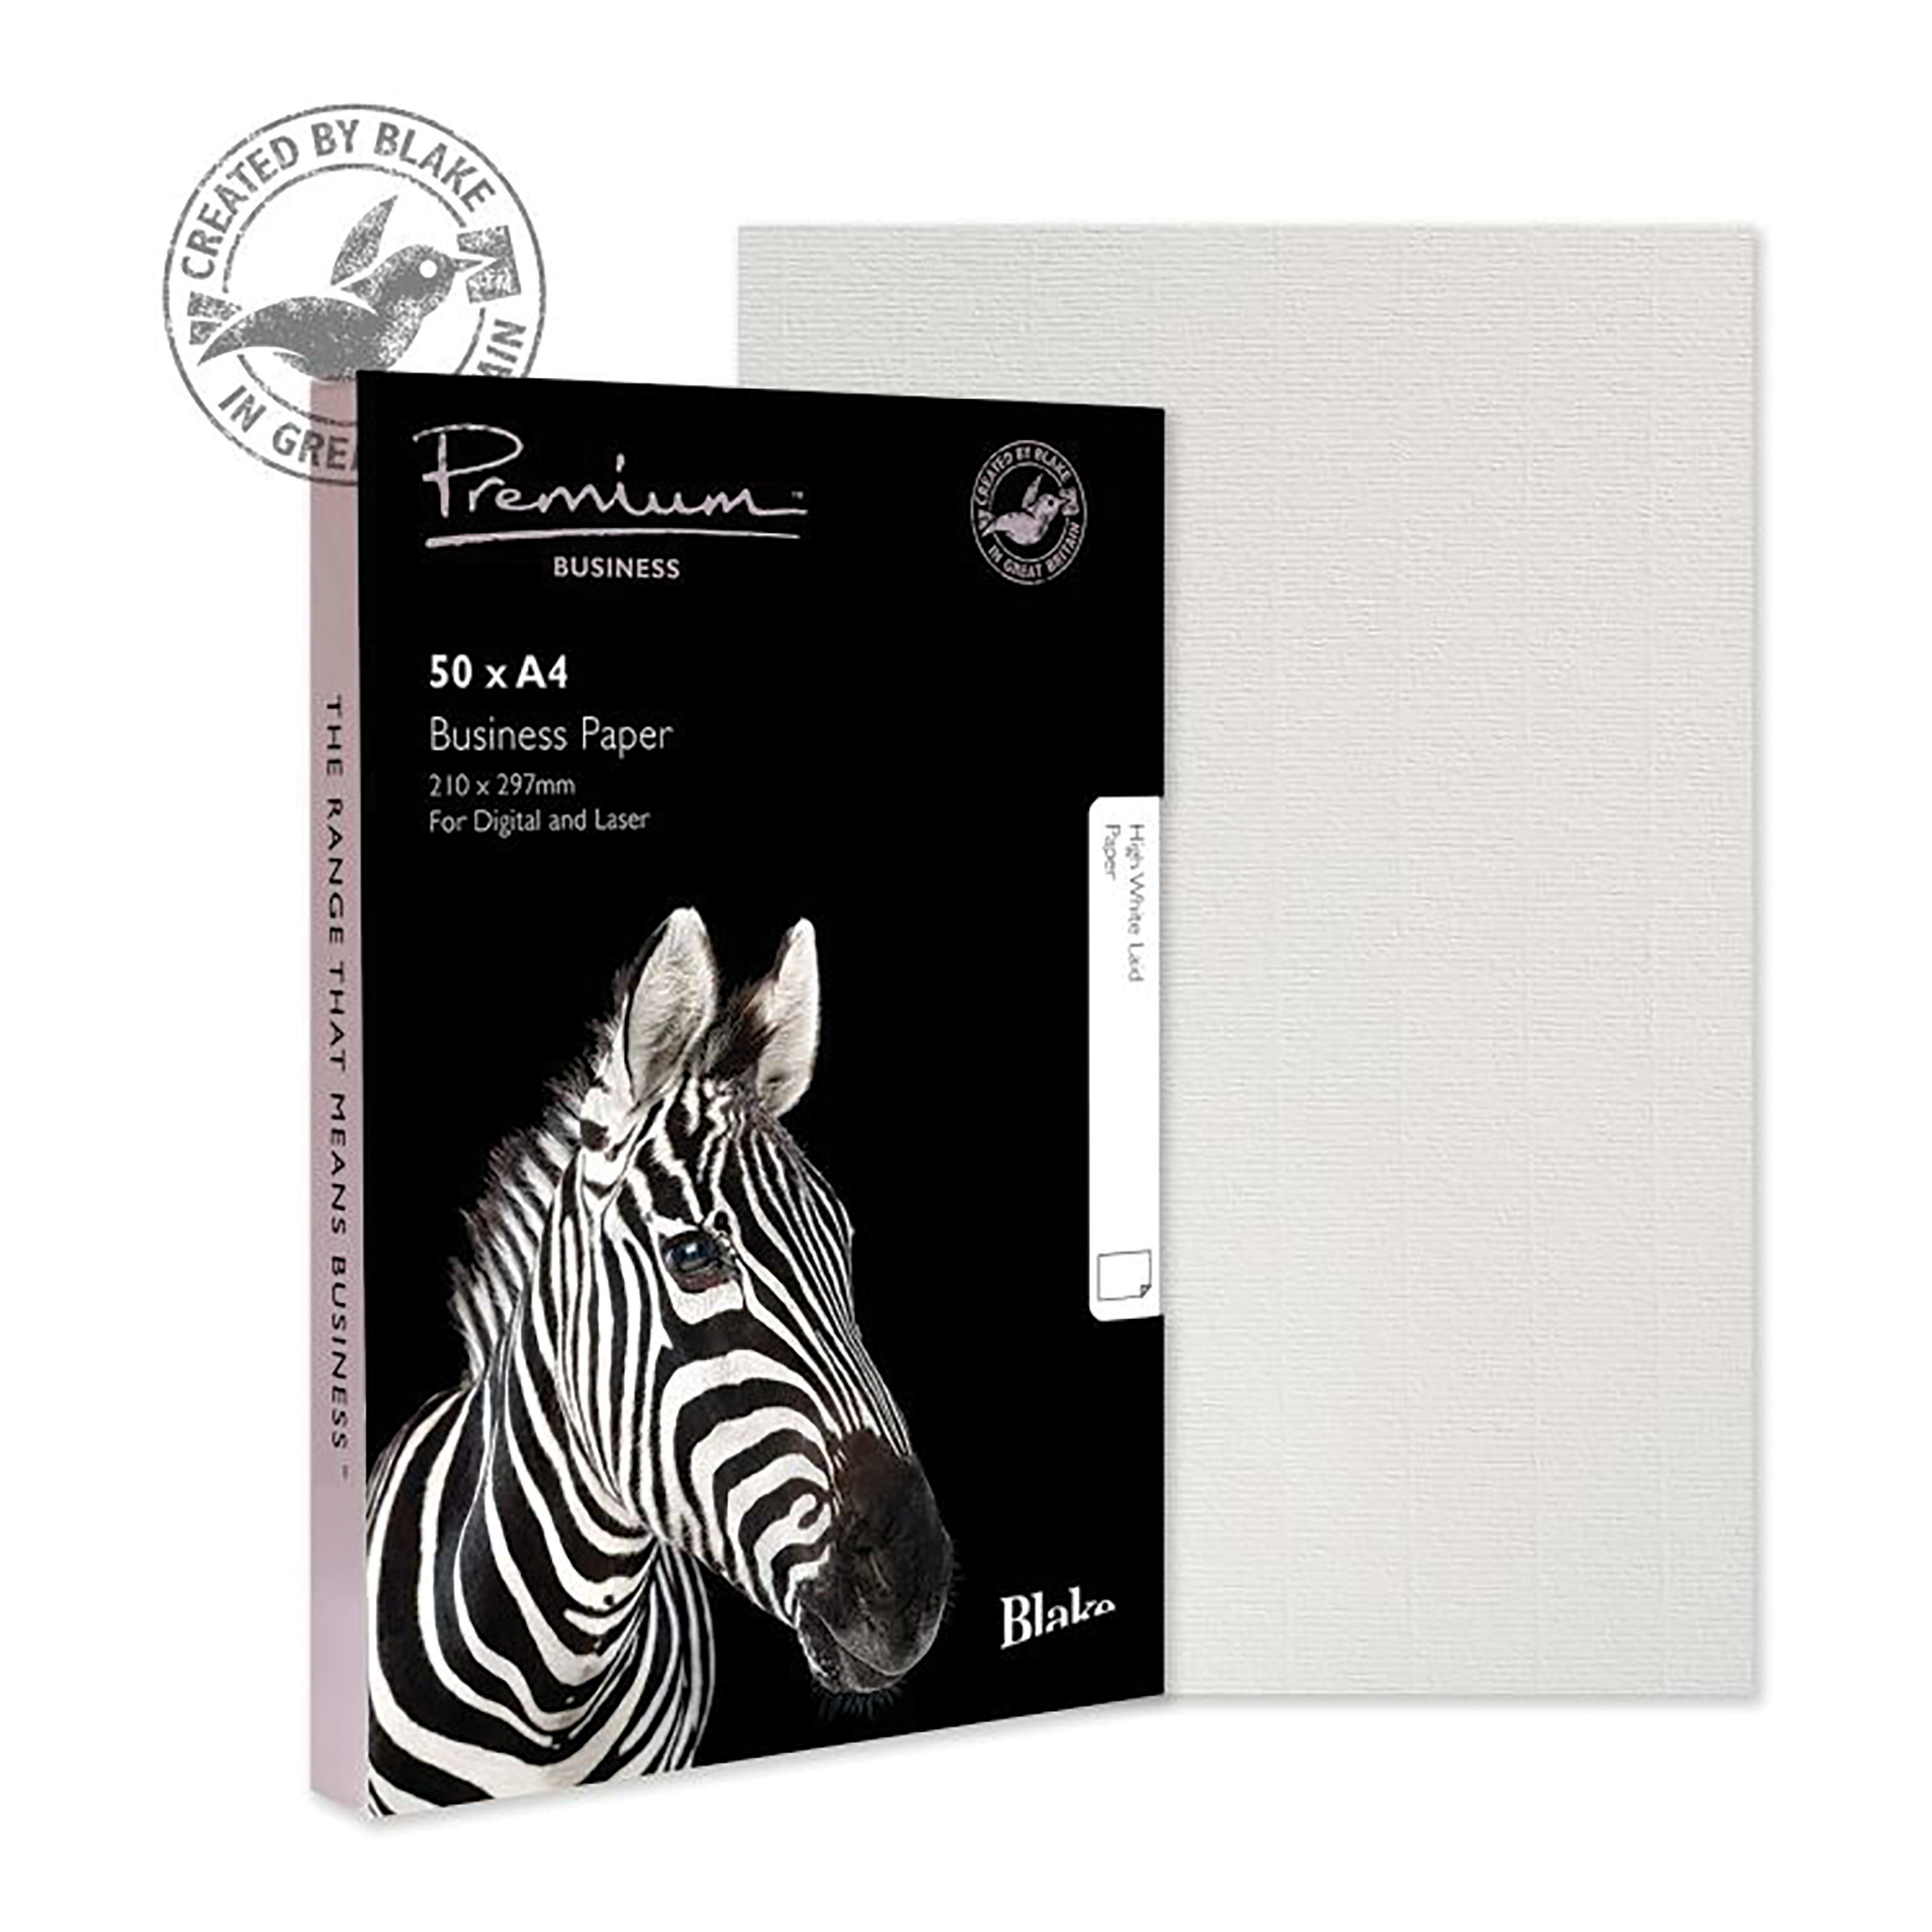 Blake Premium Business High White Laid Finish Paper 120gsm A4  Pack 50 Ref 39676